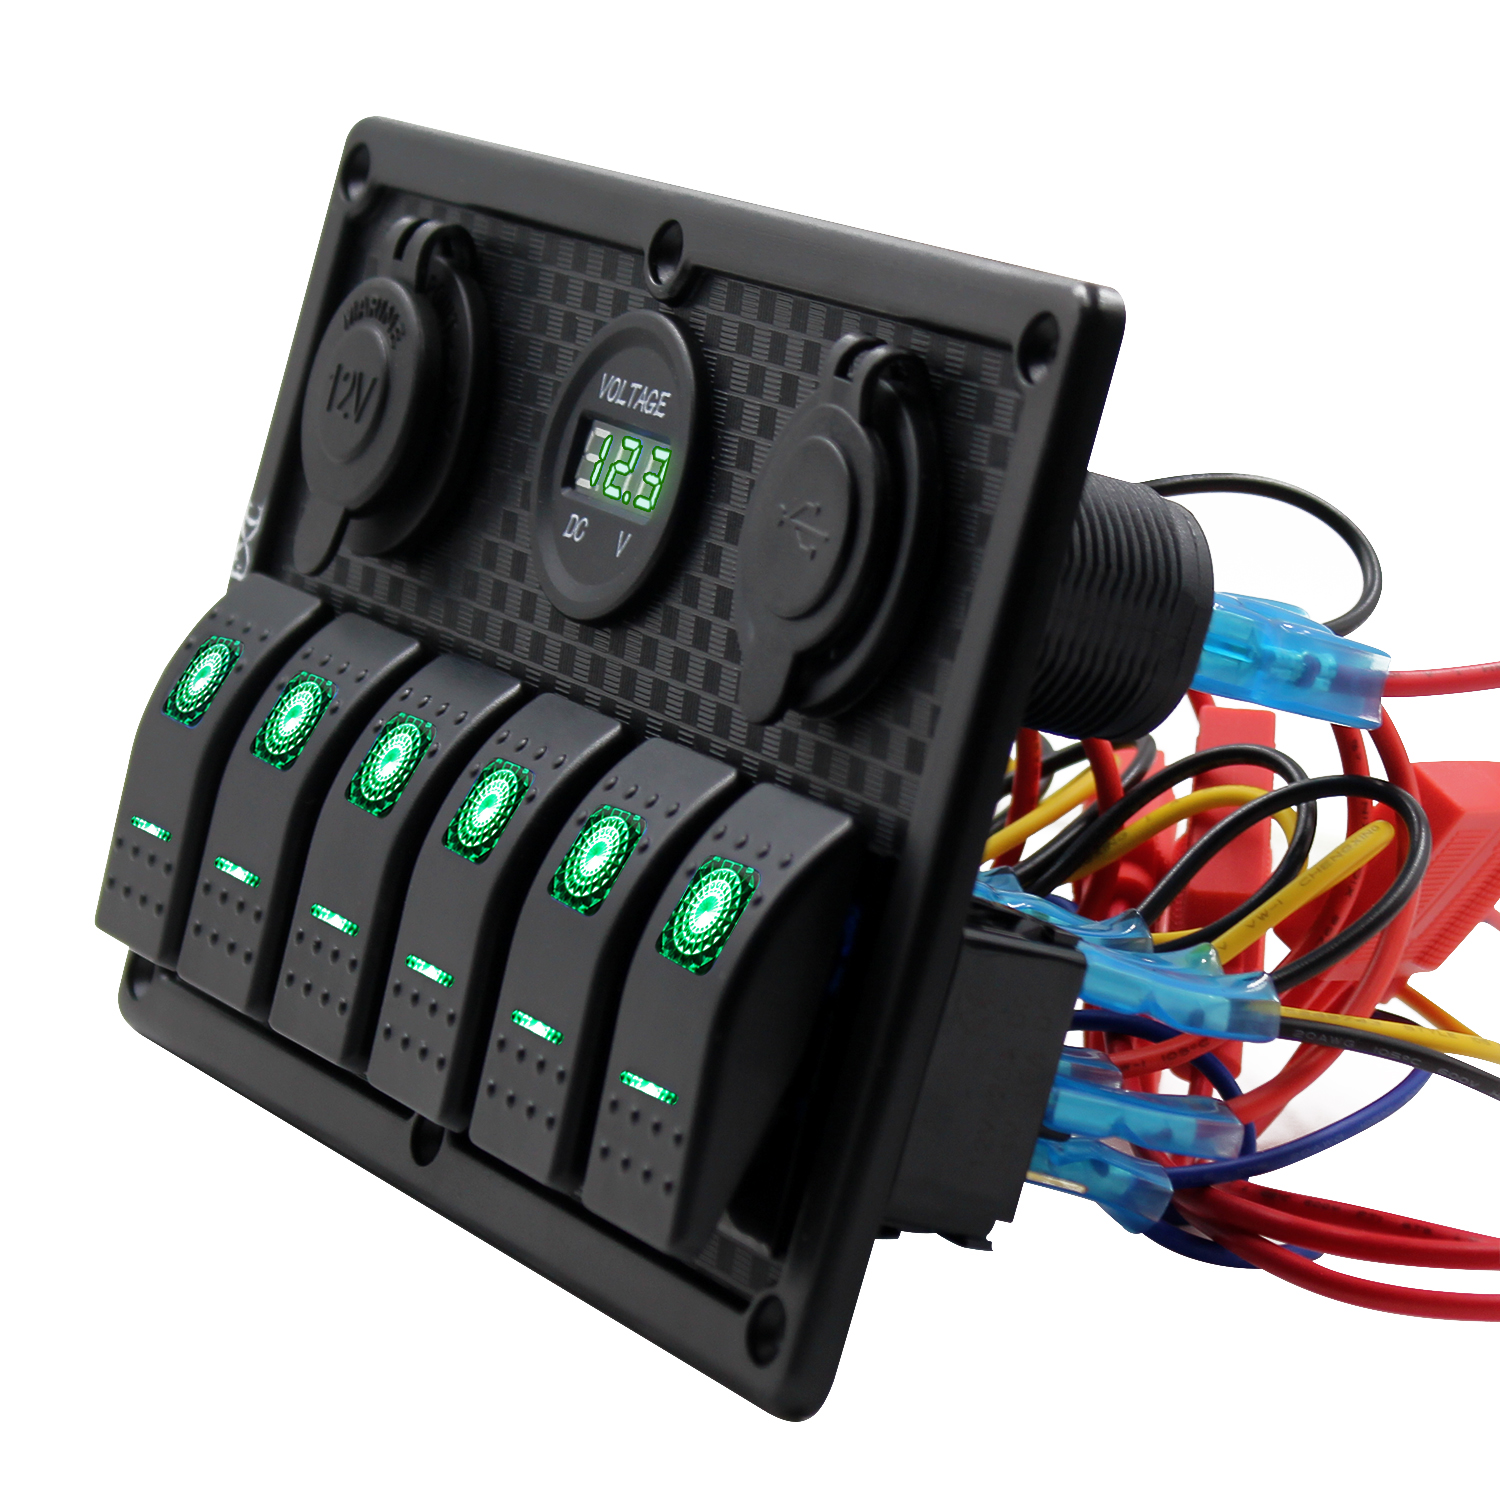 6 Gang Green Led Switch Panel Dual Usb Waterproof Power Socket Car How To Wire A Purishion Rocker With 12v 24v For Marine Boat Trailer